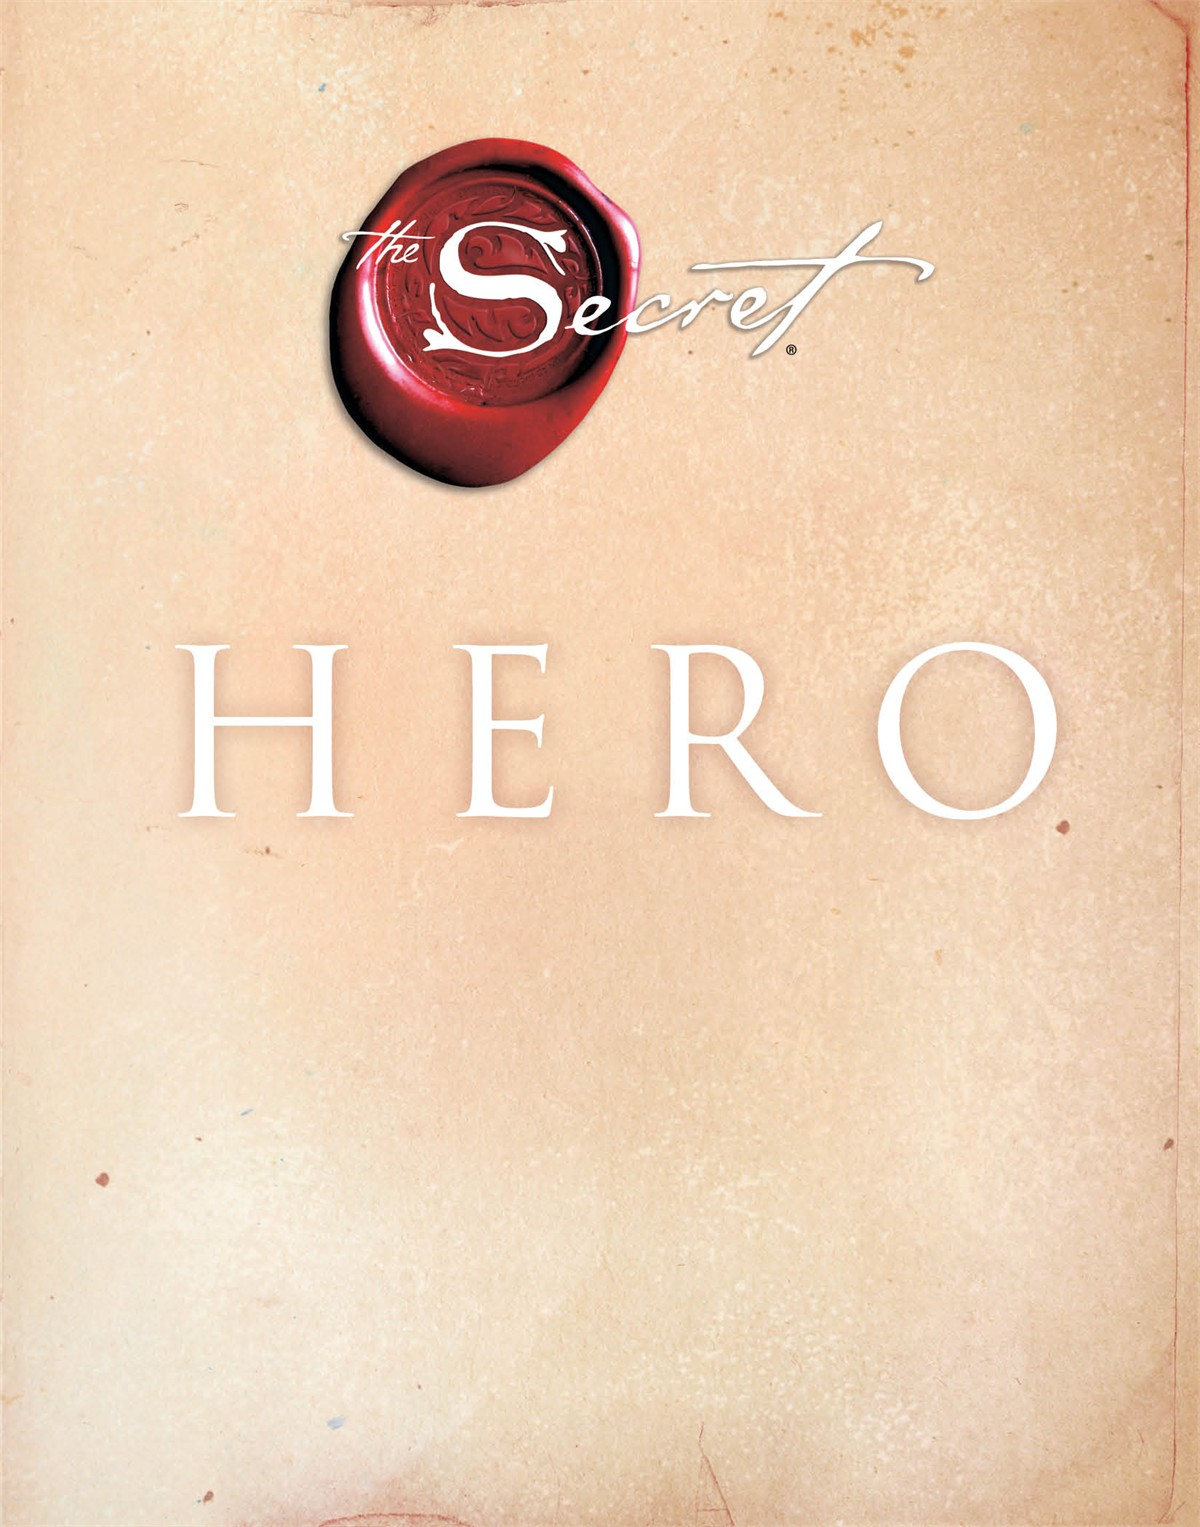 The power book by rhonda byrne in hindi free download xp